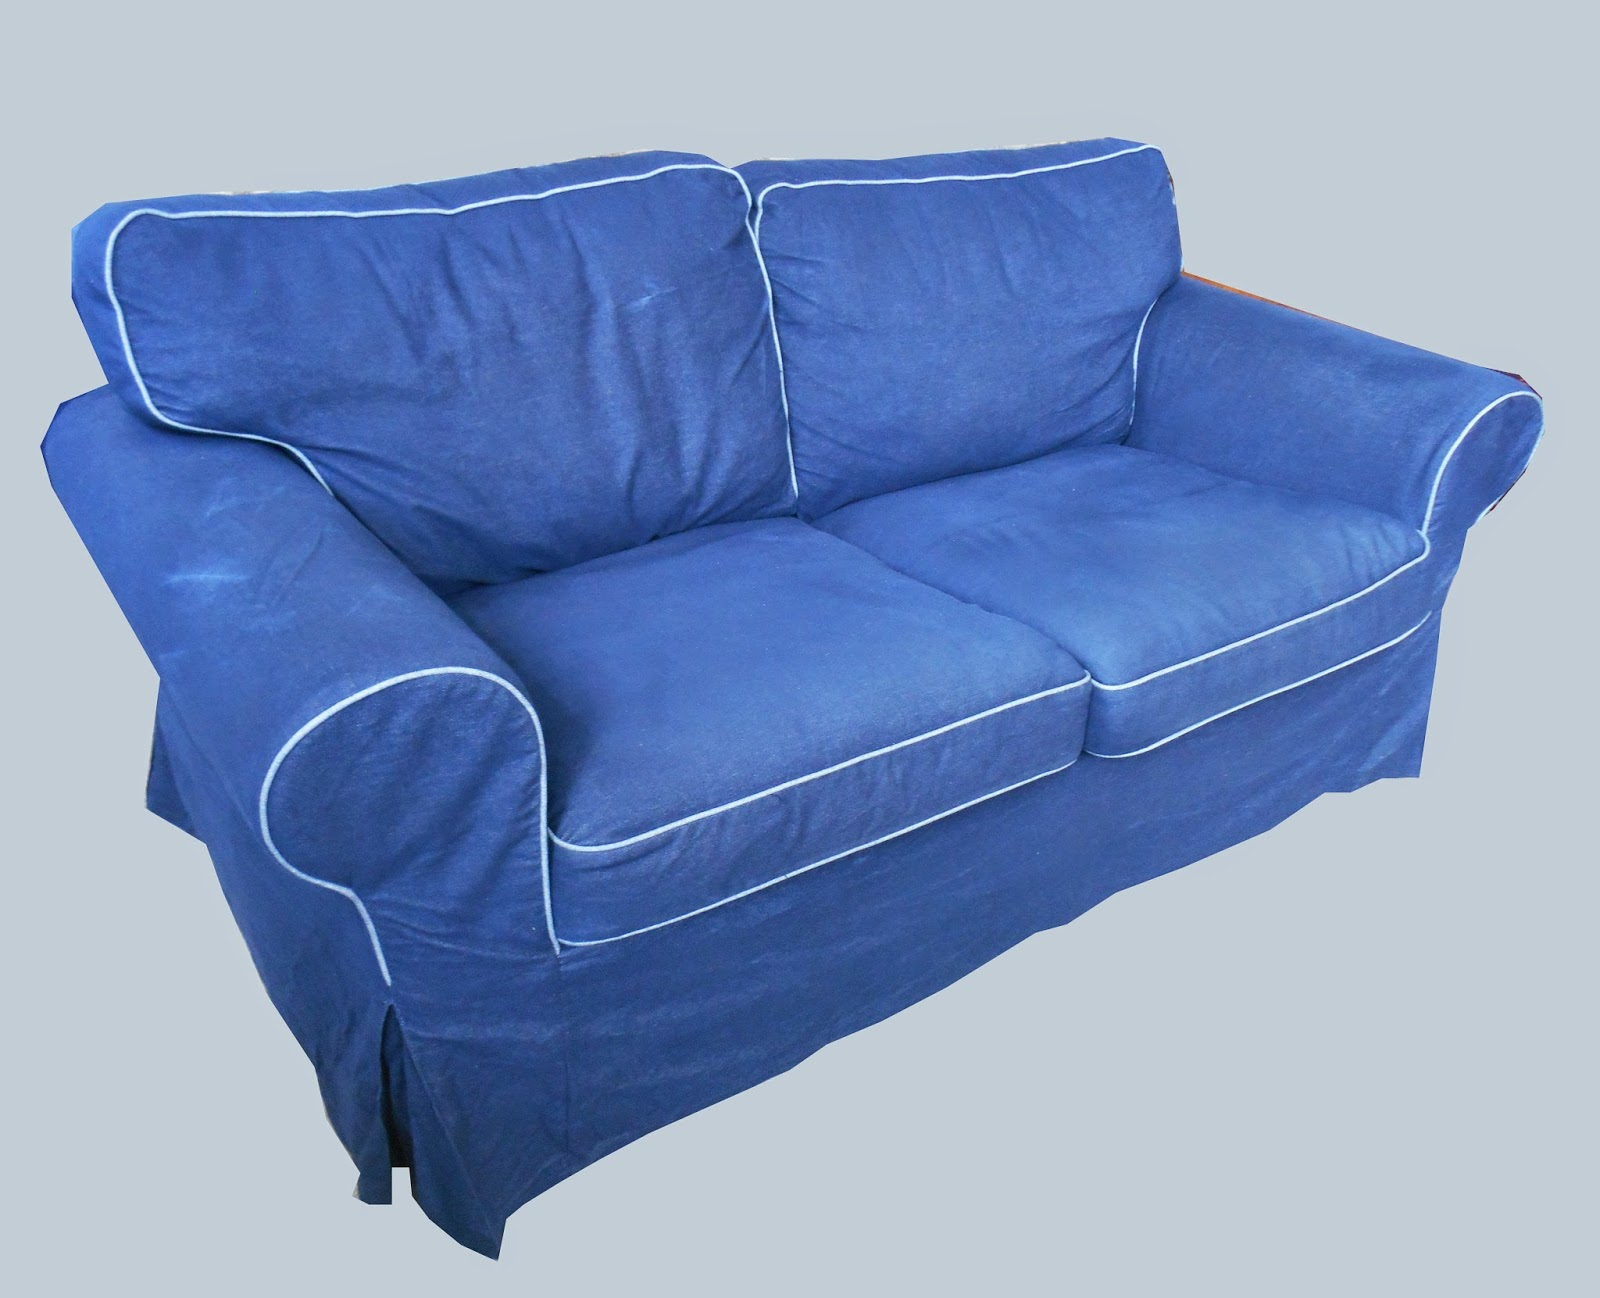 Uhuru furniture collectibles loveseat w classic denim slipcover 195 sold Denim couch and loveseat